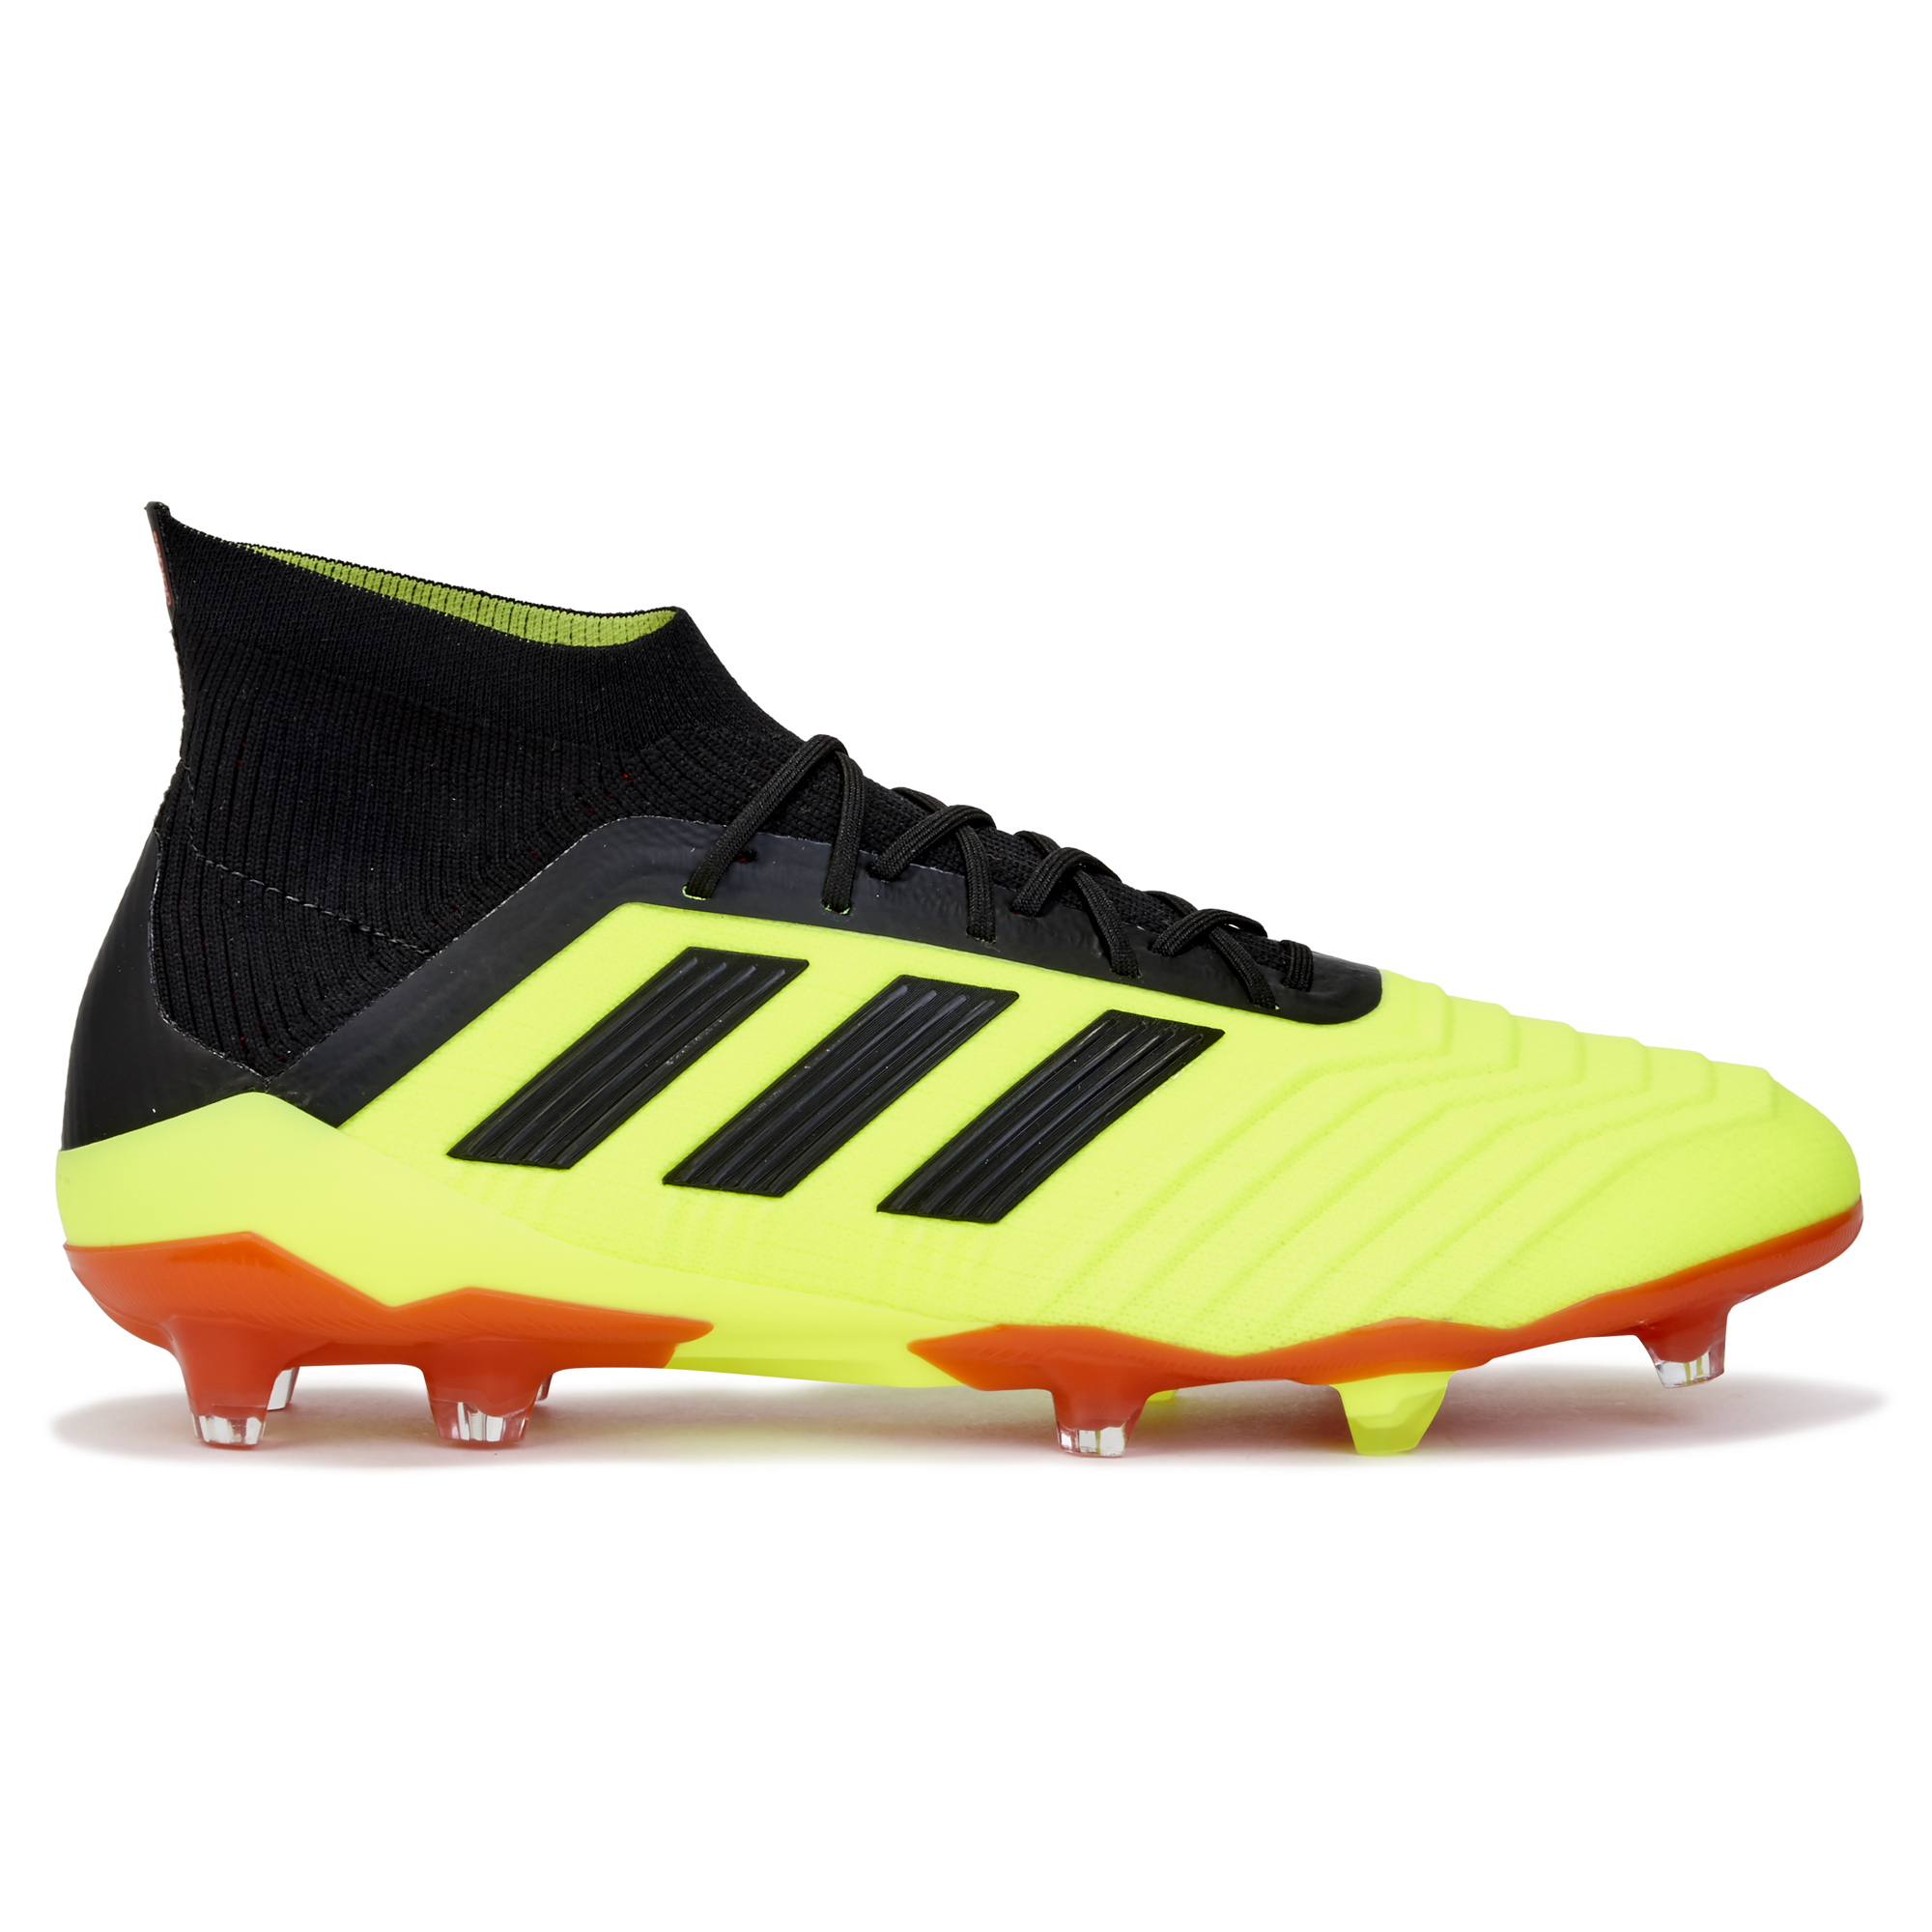 Image of adidas Predator 18.1 Firm Ground Football Boots - Yellow